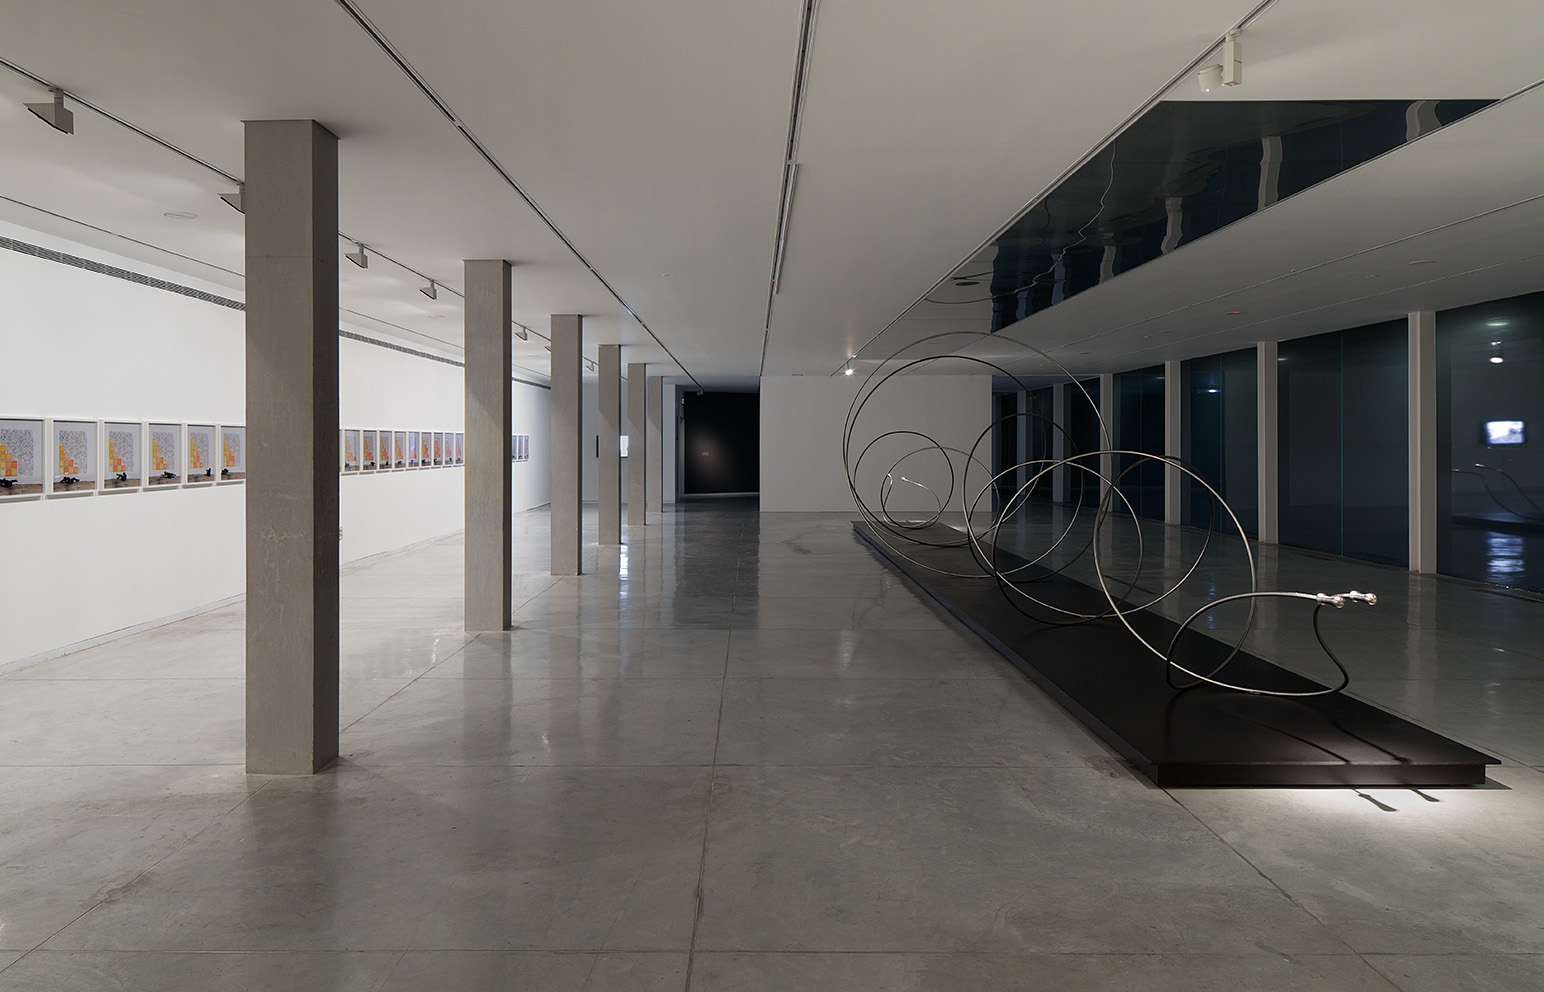 Robin Rhode, Installation shot from Under the Sun at the Tel Aviv Museum of Art, Photo by Elad Sarig